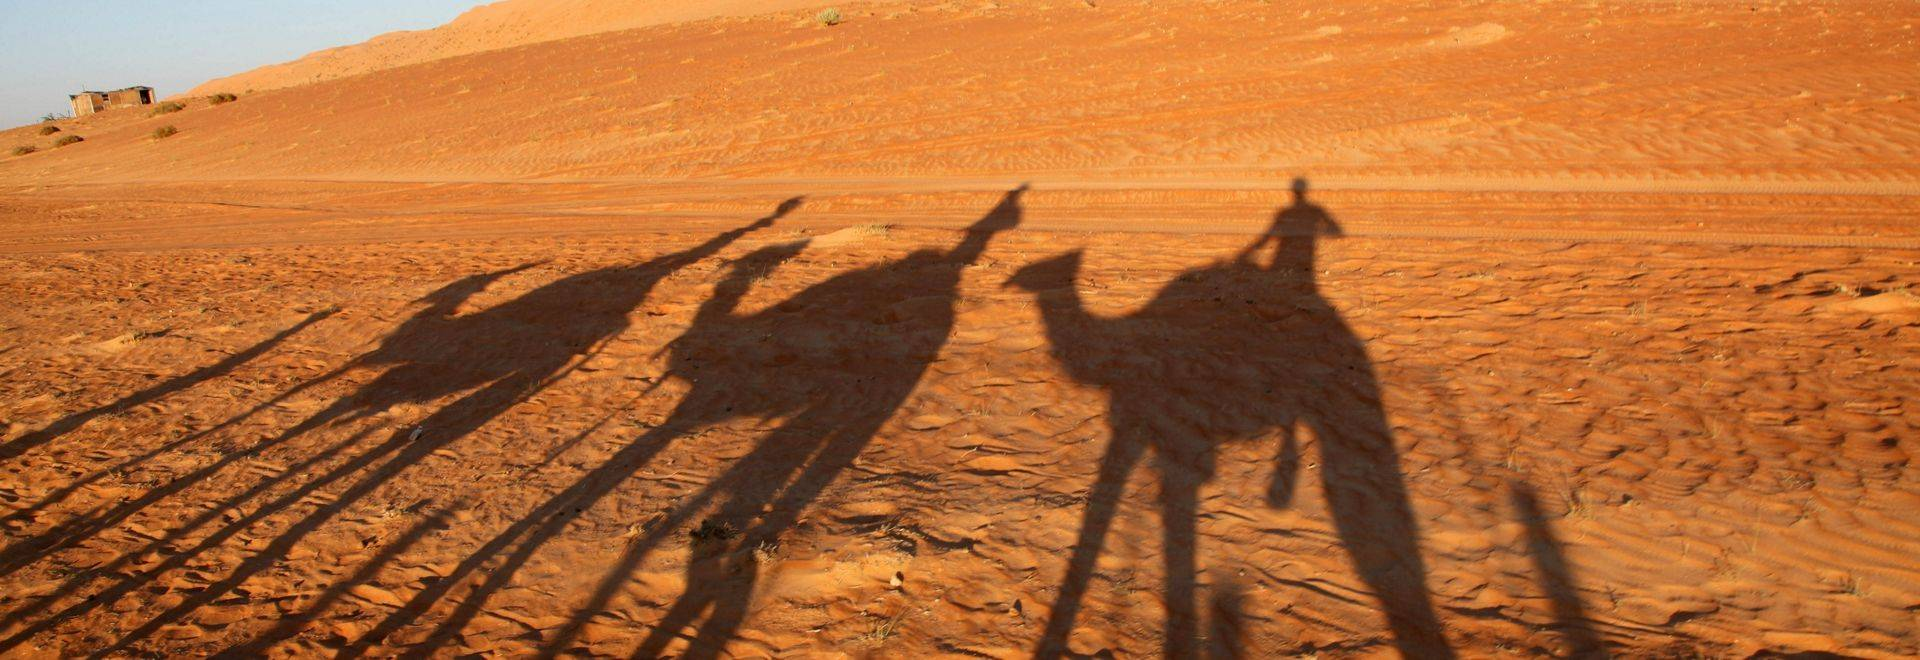 Silhouettes at sunset of camels against the red desert sands of Oman